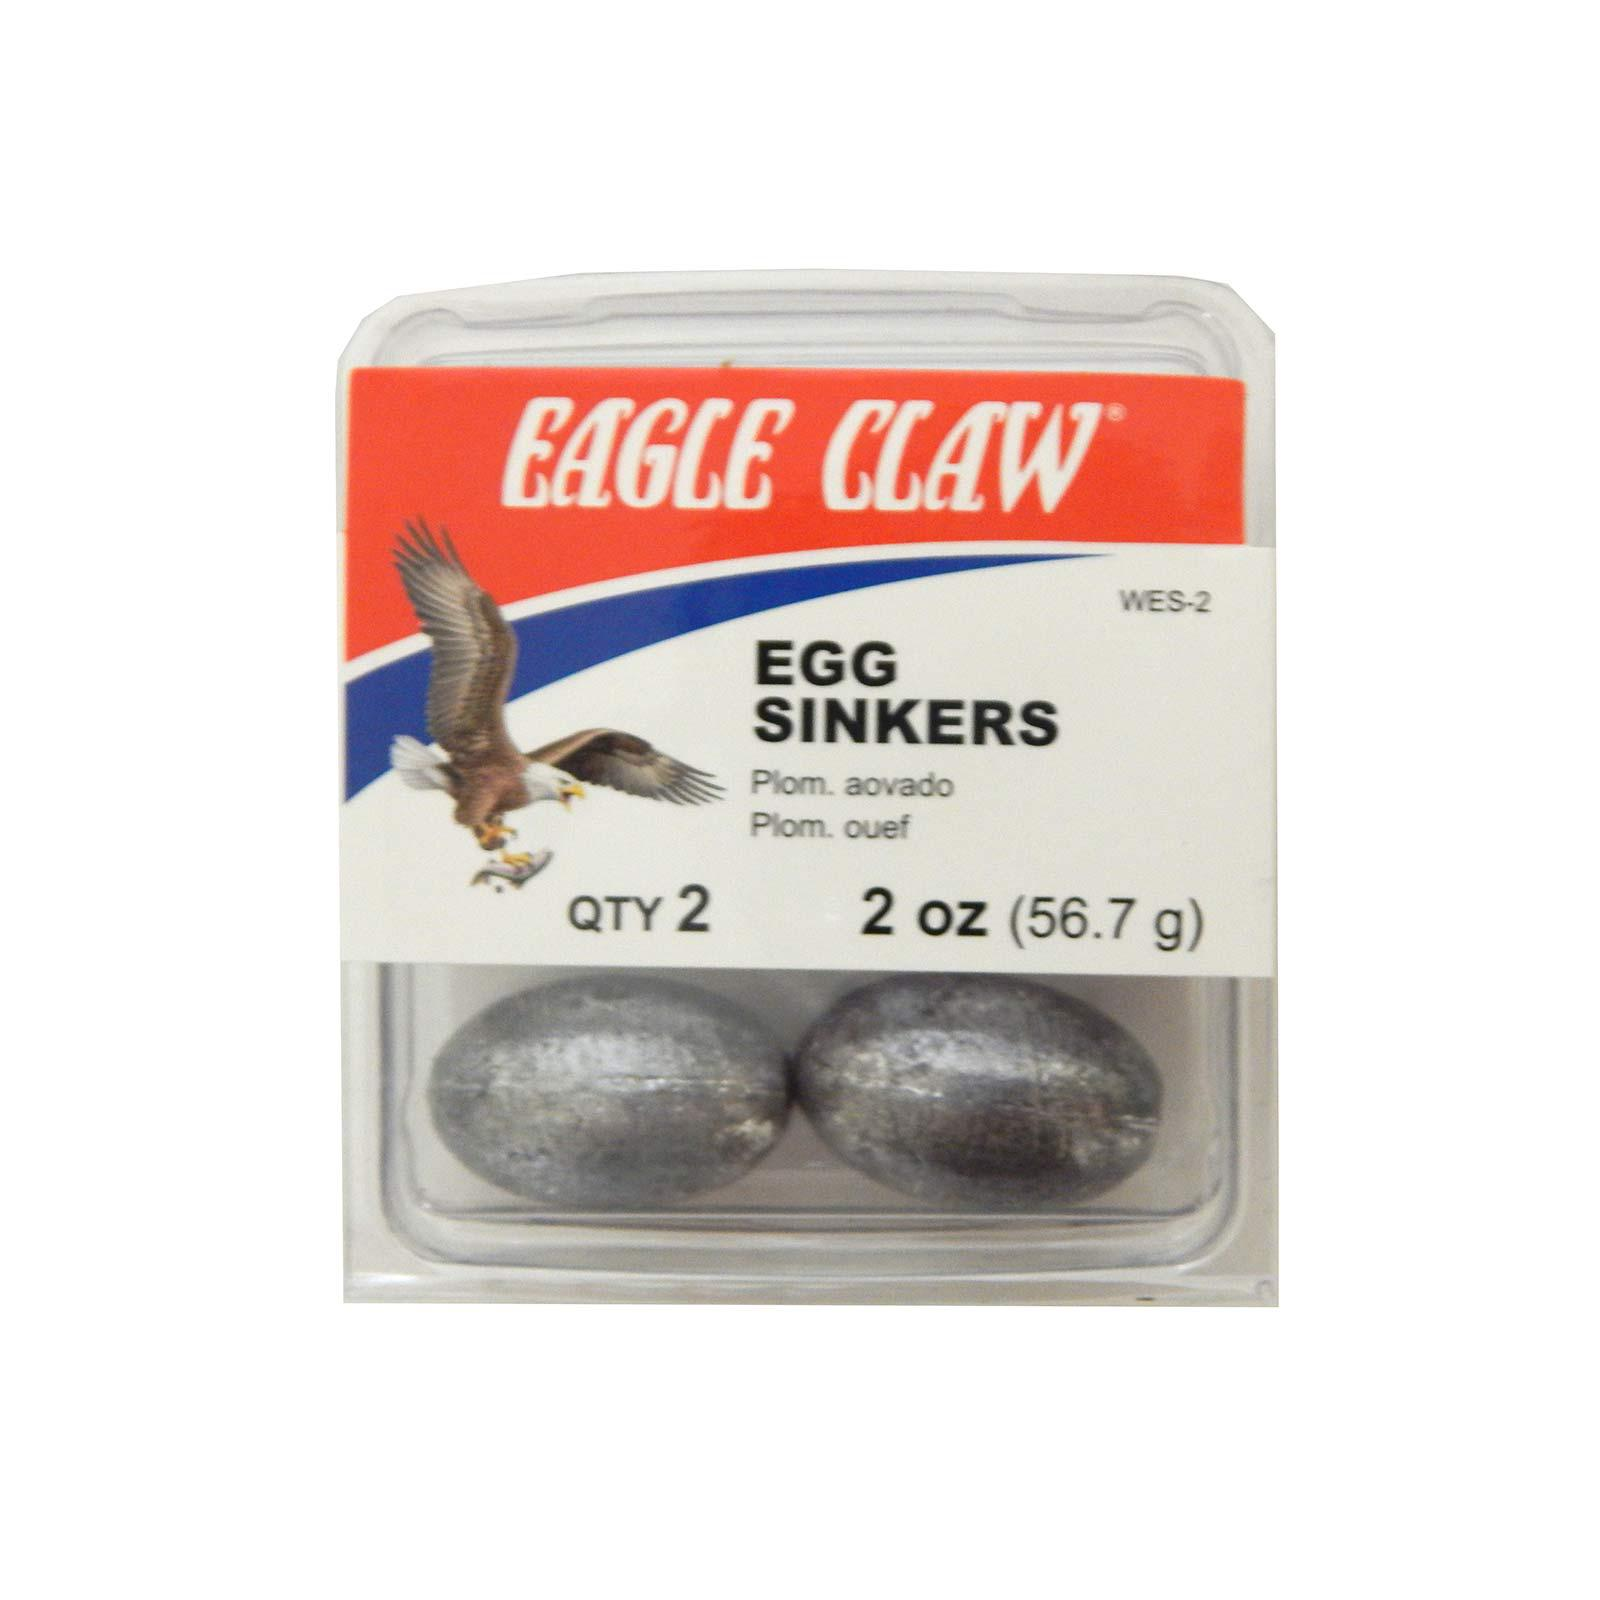 Eagle Claw Egg Sinkers Size 2 Ounce Silver Pack of 2, WES-2